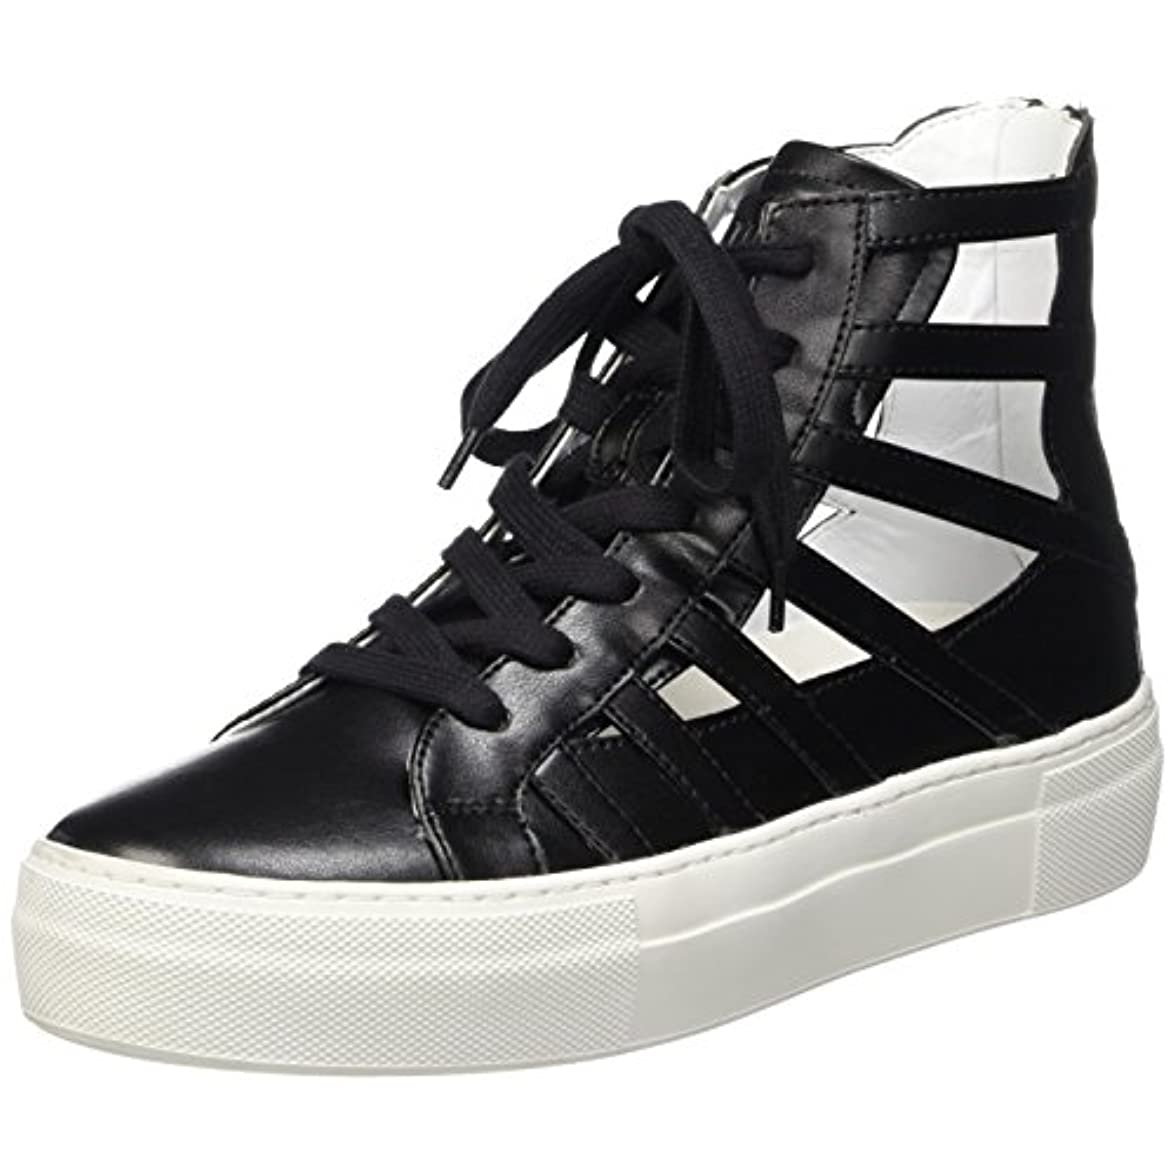 Low-top Scarpe Donna Love Cult